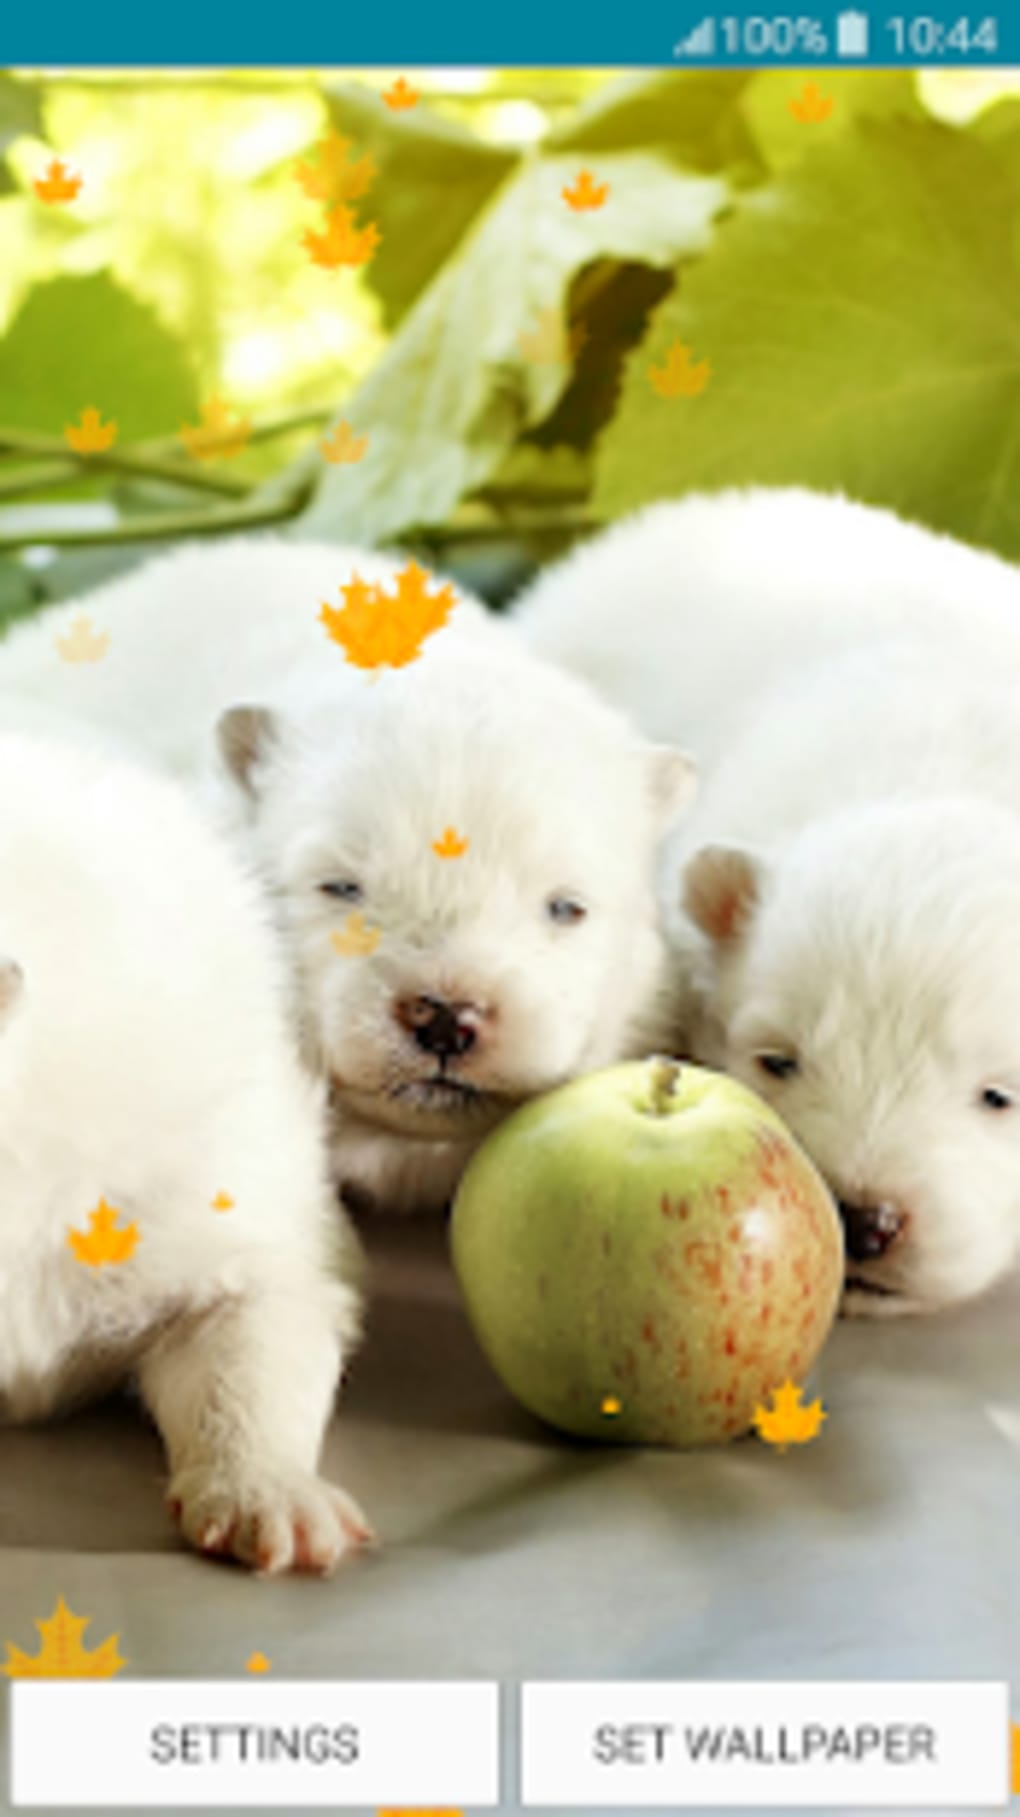 Live Wallpapers Puppies APK for Android